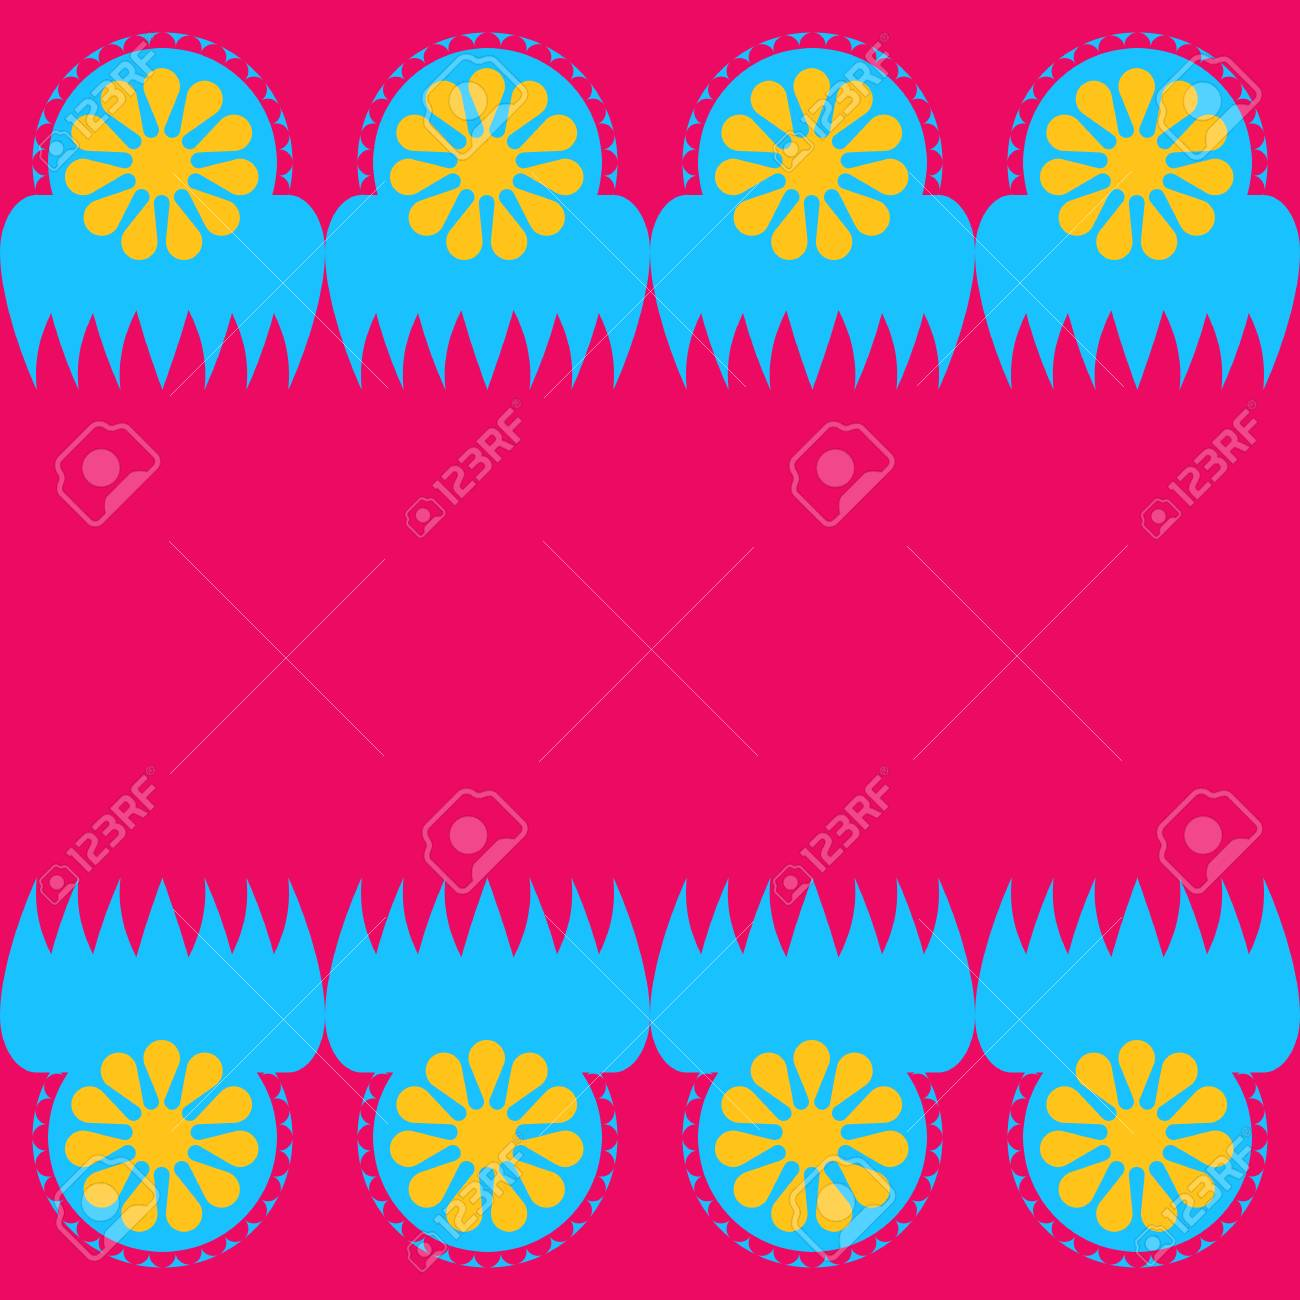 Ornamental geometric design in pink and blue background  template vector illustration Stock Vector - 79888792